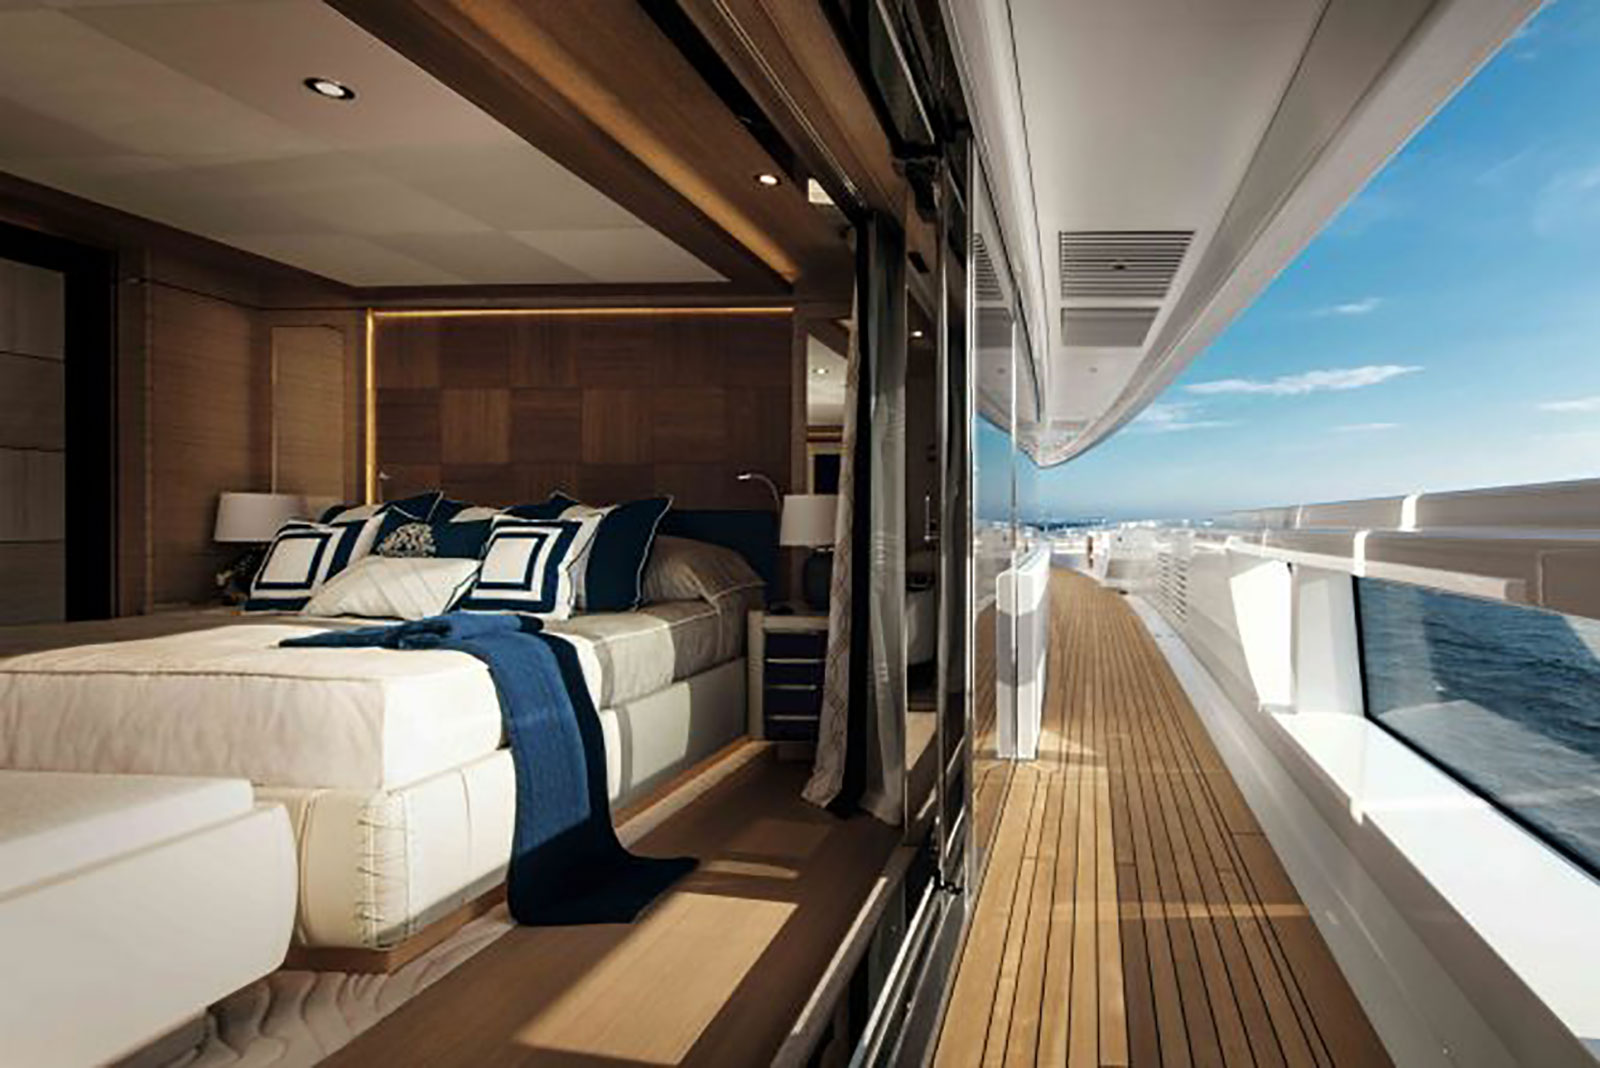 Luxury yacht Odyssey II renamed superyacht Lady Jorgia and available for charter in the West Med